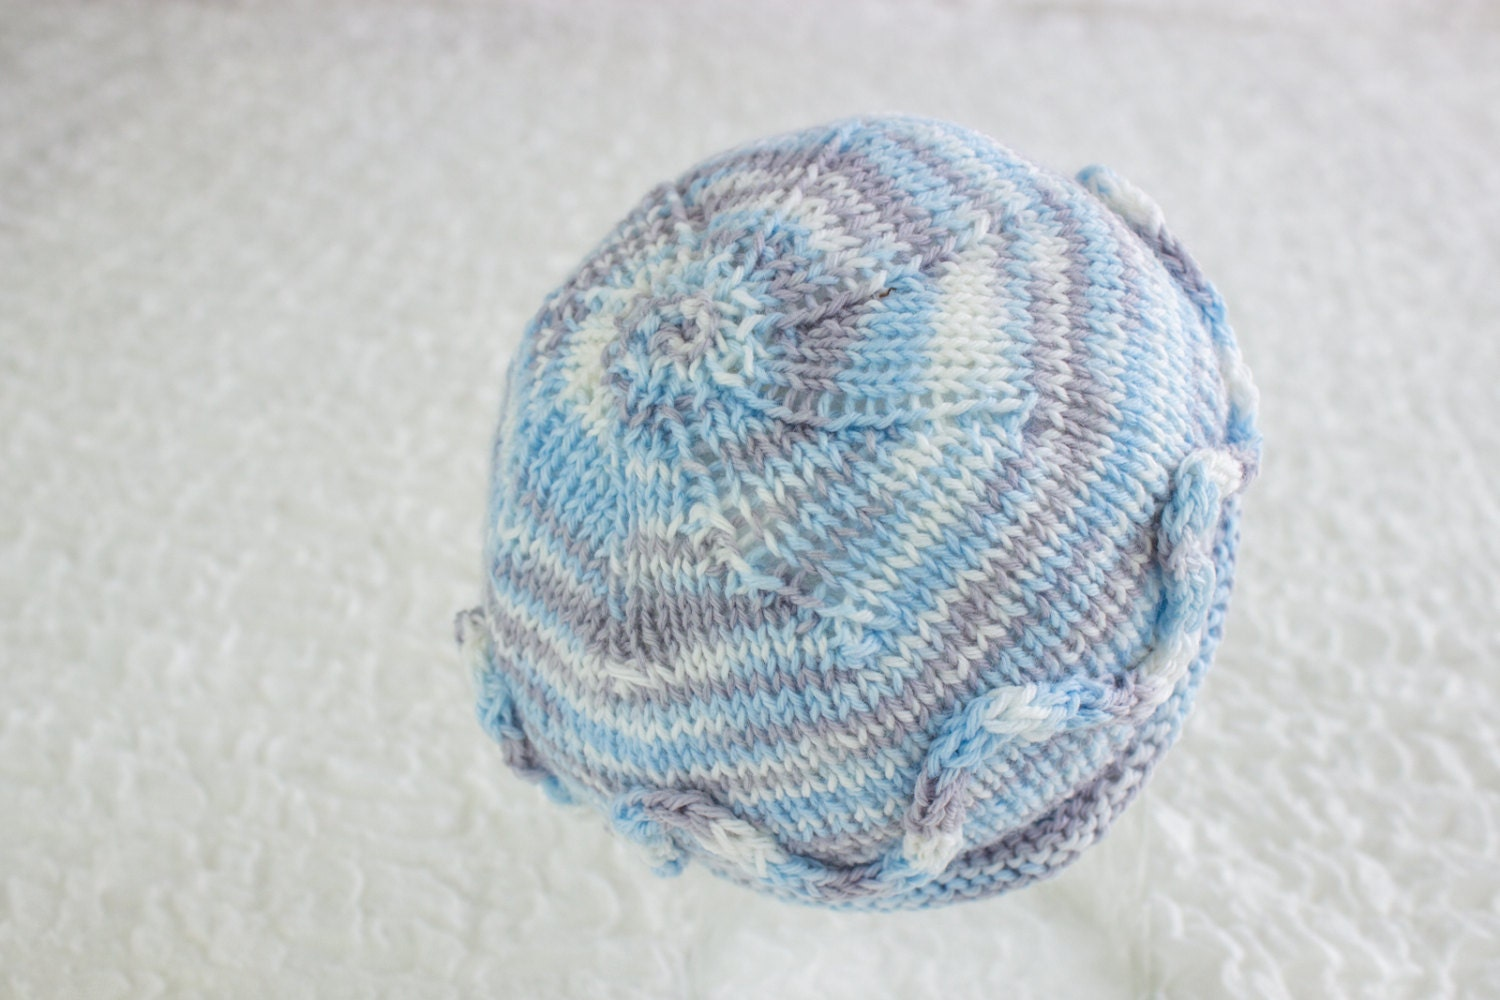 Newborn Beanie Knitting Pattern : FREE KNITTING PATTERN Simple Newborn Beanie Newborn Hat